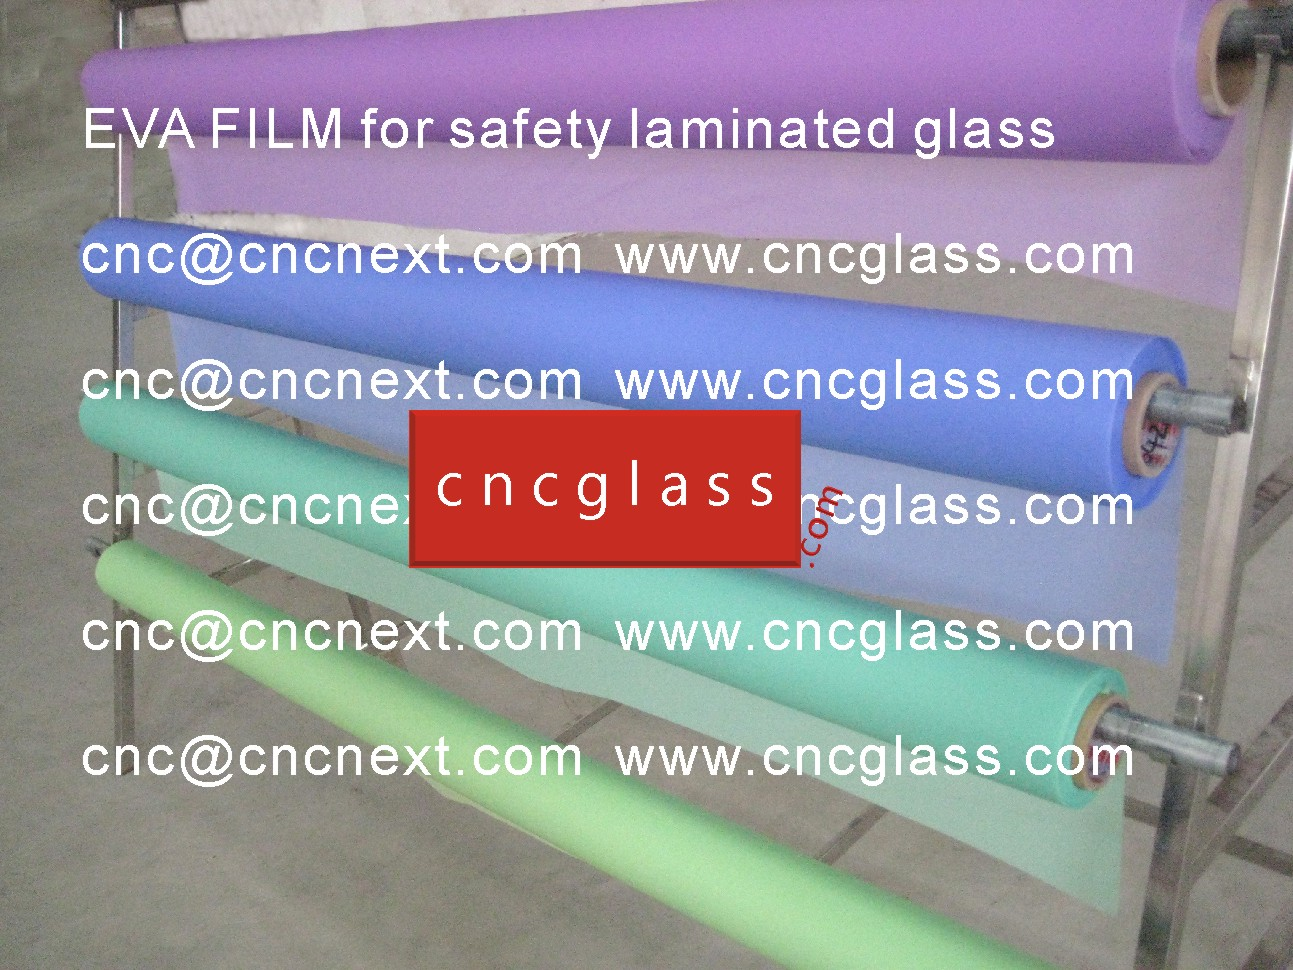 006 EVAFORCE EVA FILM FOR SAFETY LAMINATED GLASS